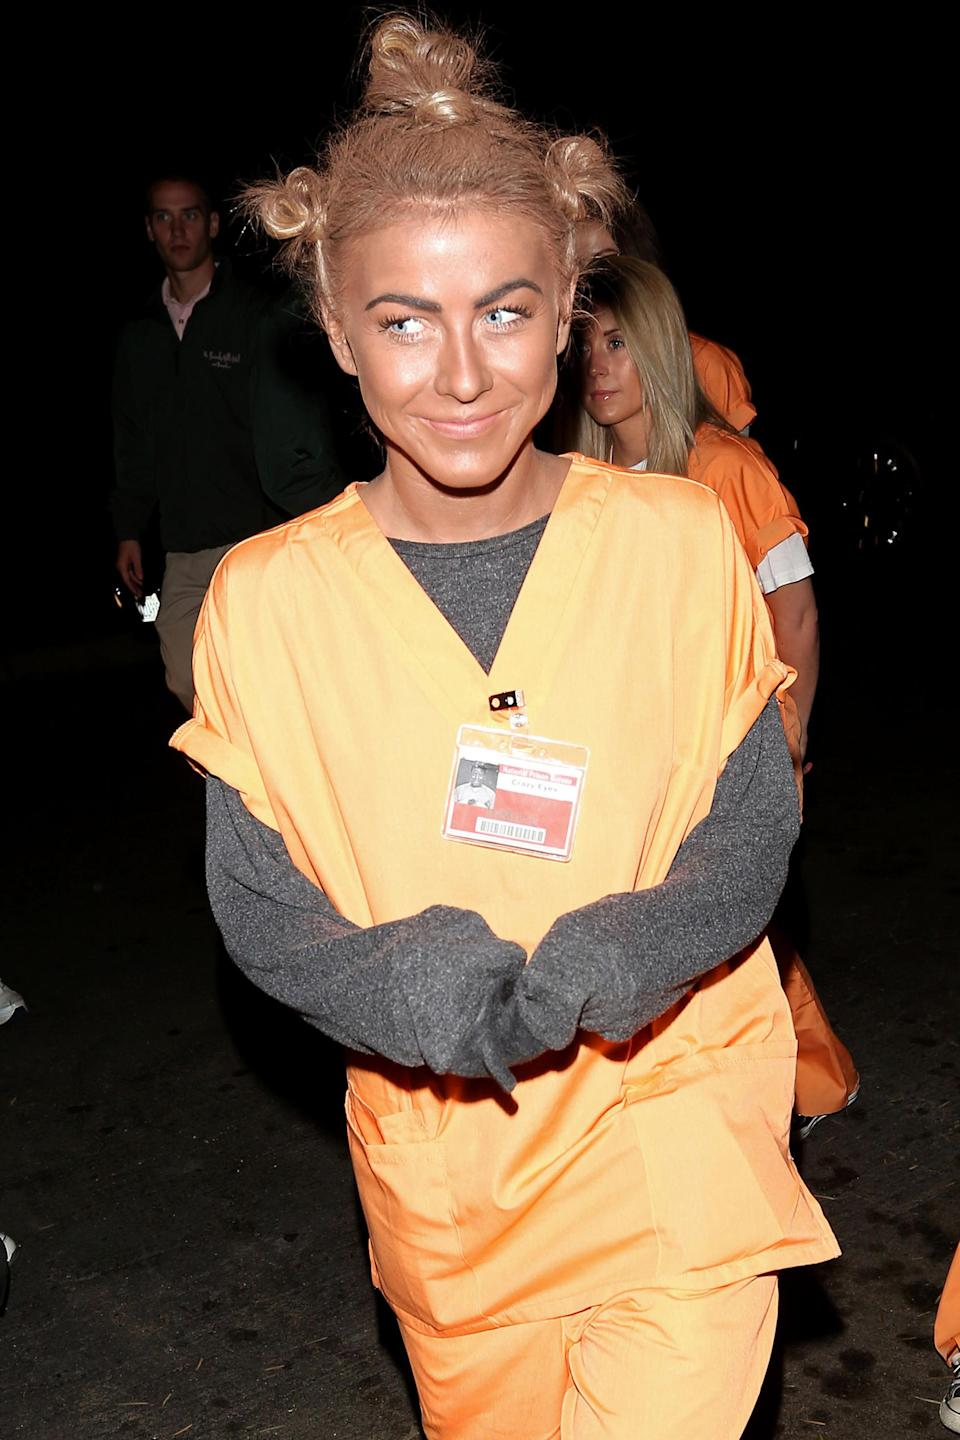 """<p>In 2013, actress Julianne Hough committed one of the worst Halloween crimes: blackface. The star blacked herself up to turn into Crazy Eyes from Netflix prison drama 'Orange Is the New Black'. She was later forced to apologise, saying: """"It certainly was never my intention to be disrespectful or demeaning to anyone in any way. I realise my costume hurt and offended people and I truly apologise.""""<br><i>[Photo: PacificCoastNews]</i> </p>"""